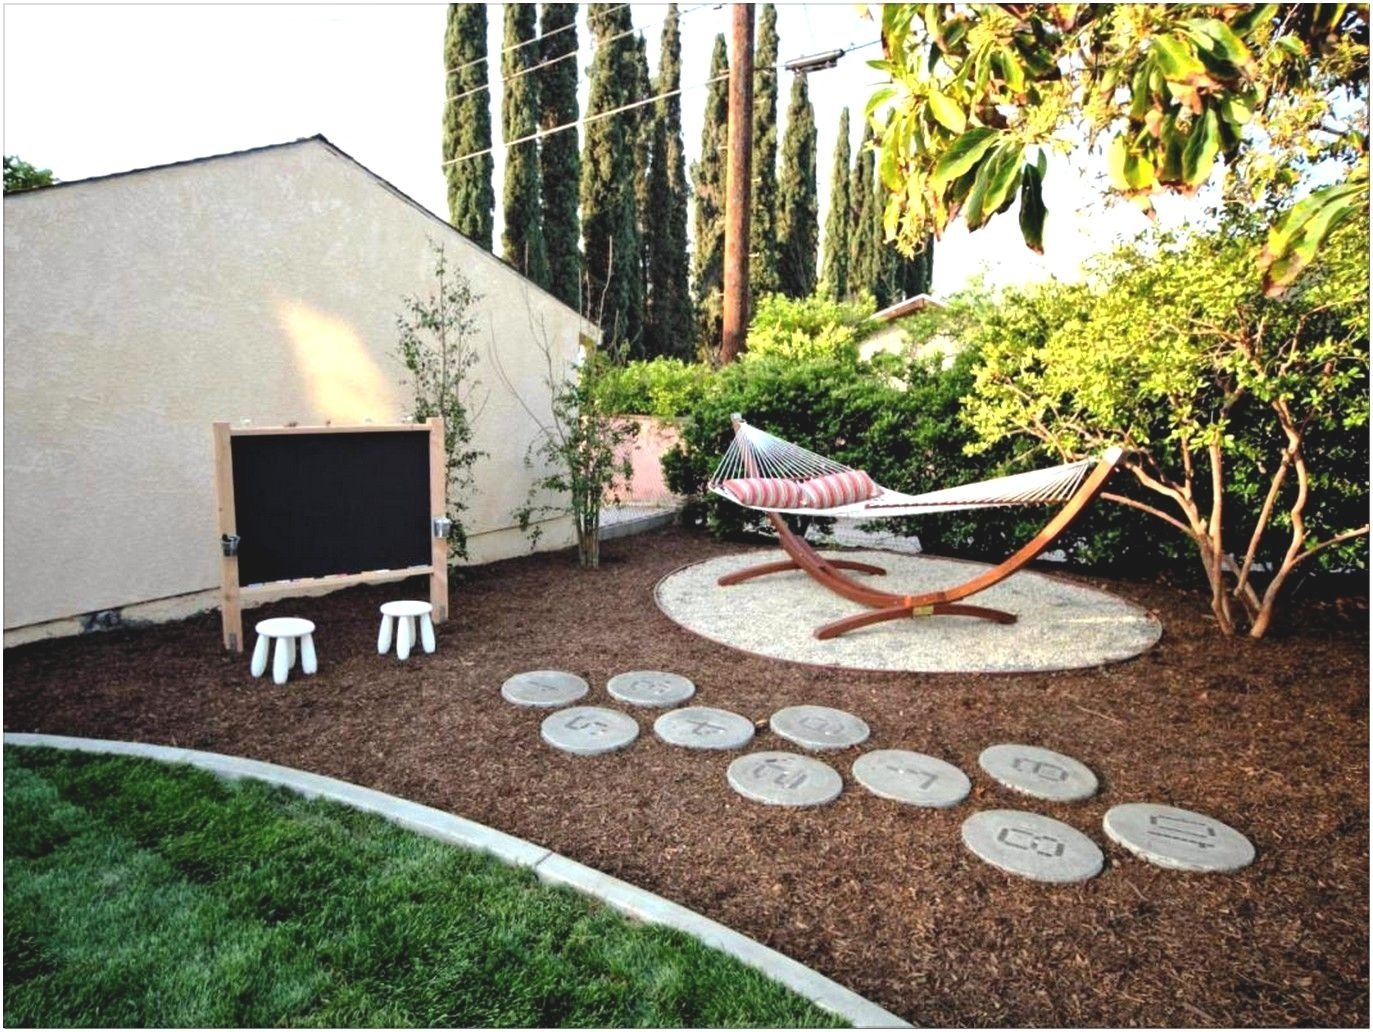 10 Cute Backyard Ideas On A Budget the best fresh backyard ideas on a budget javidecor for popular and